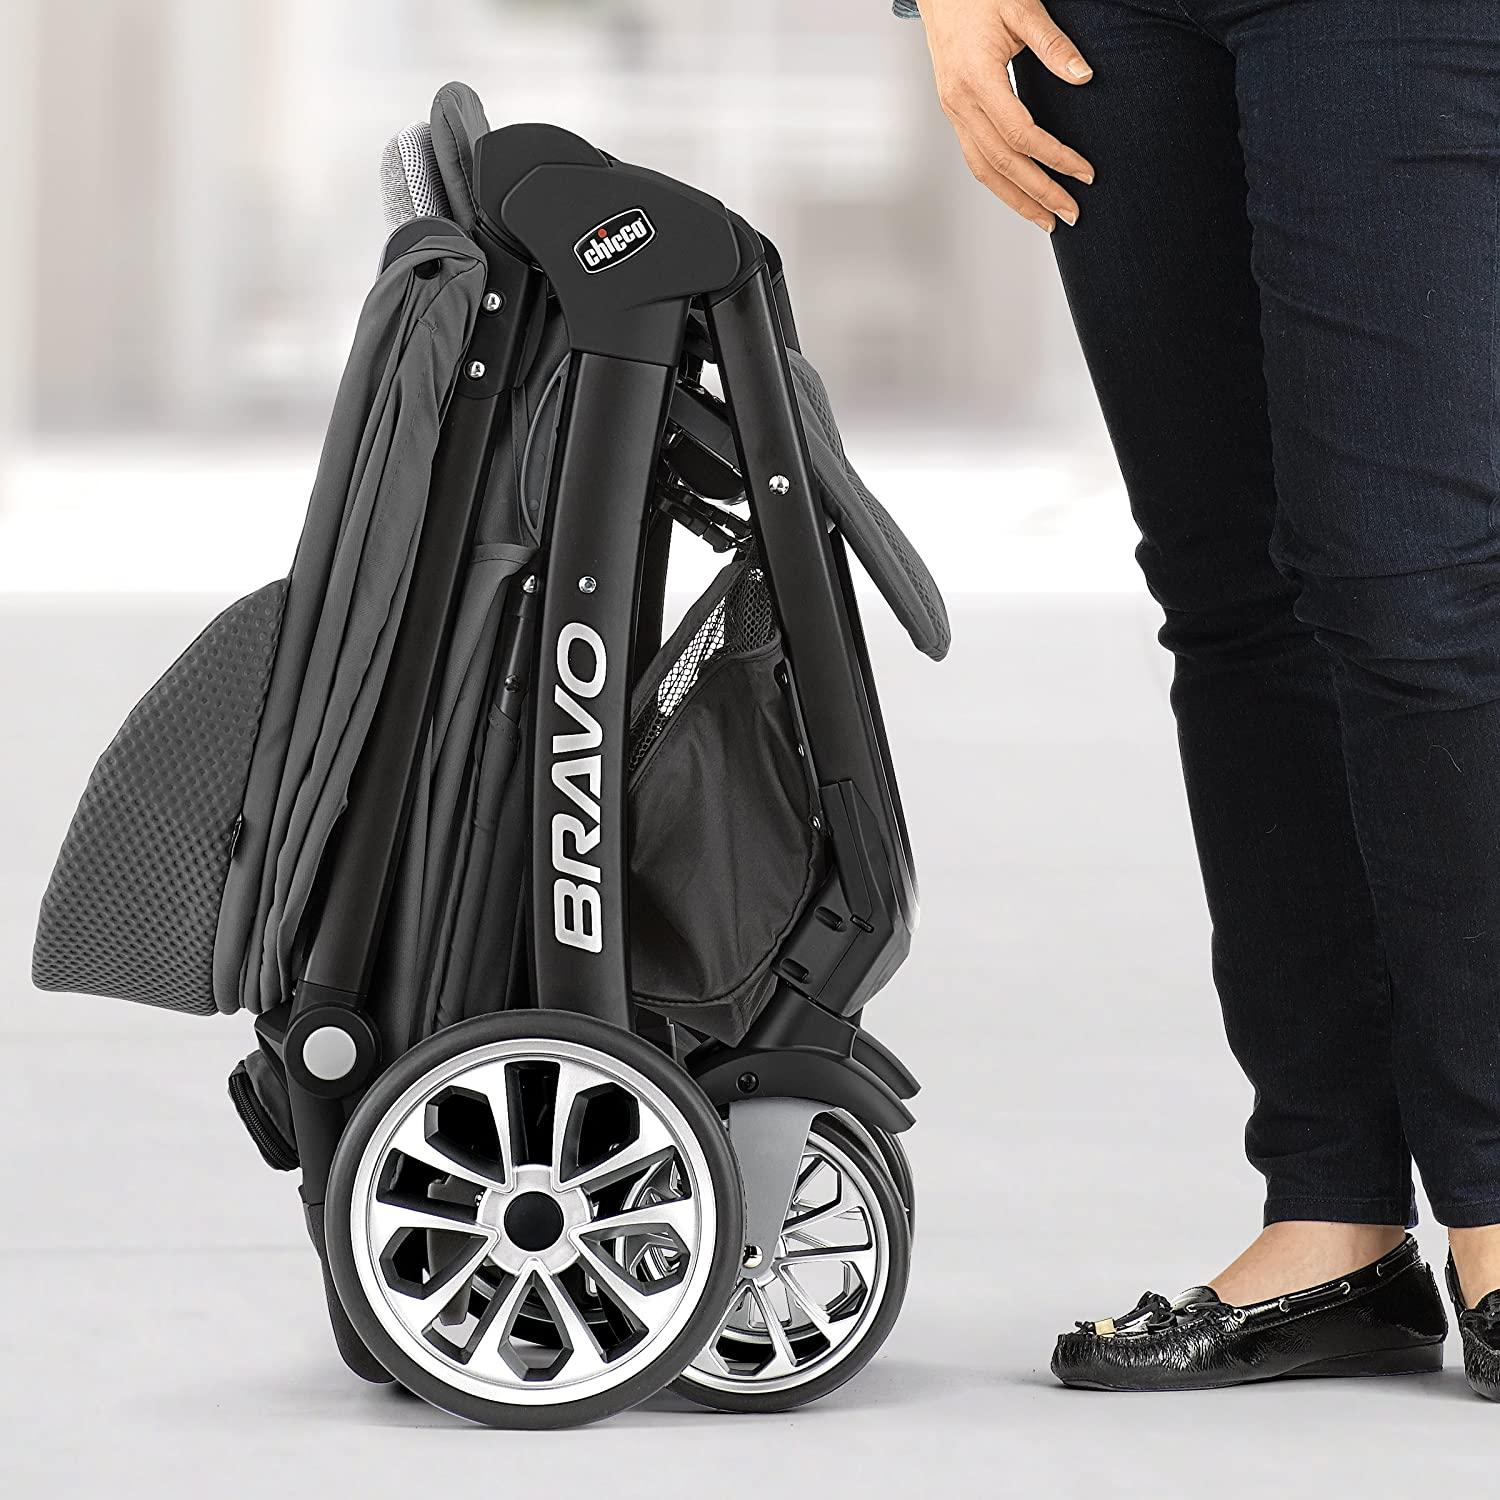 amazon com chicco bravo le travel system silhouette baby